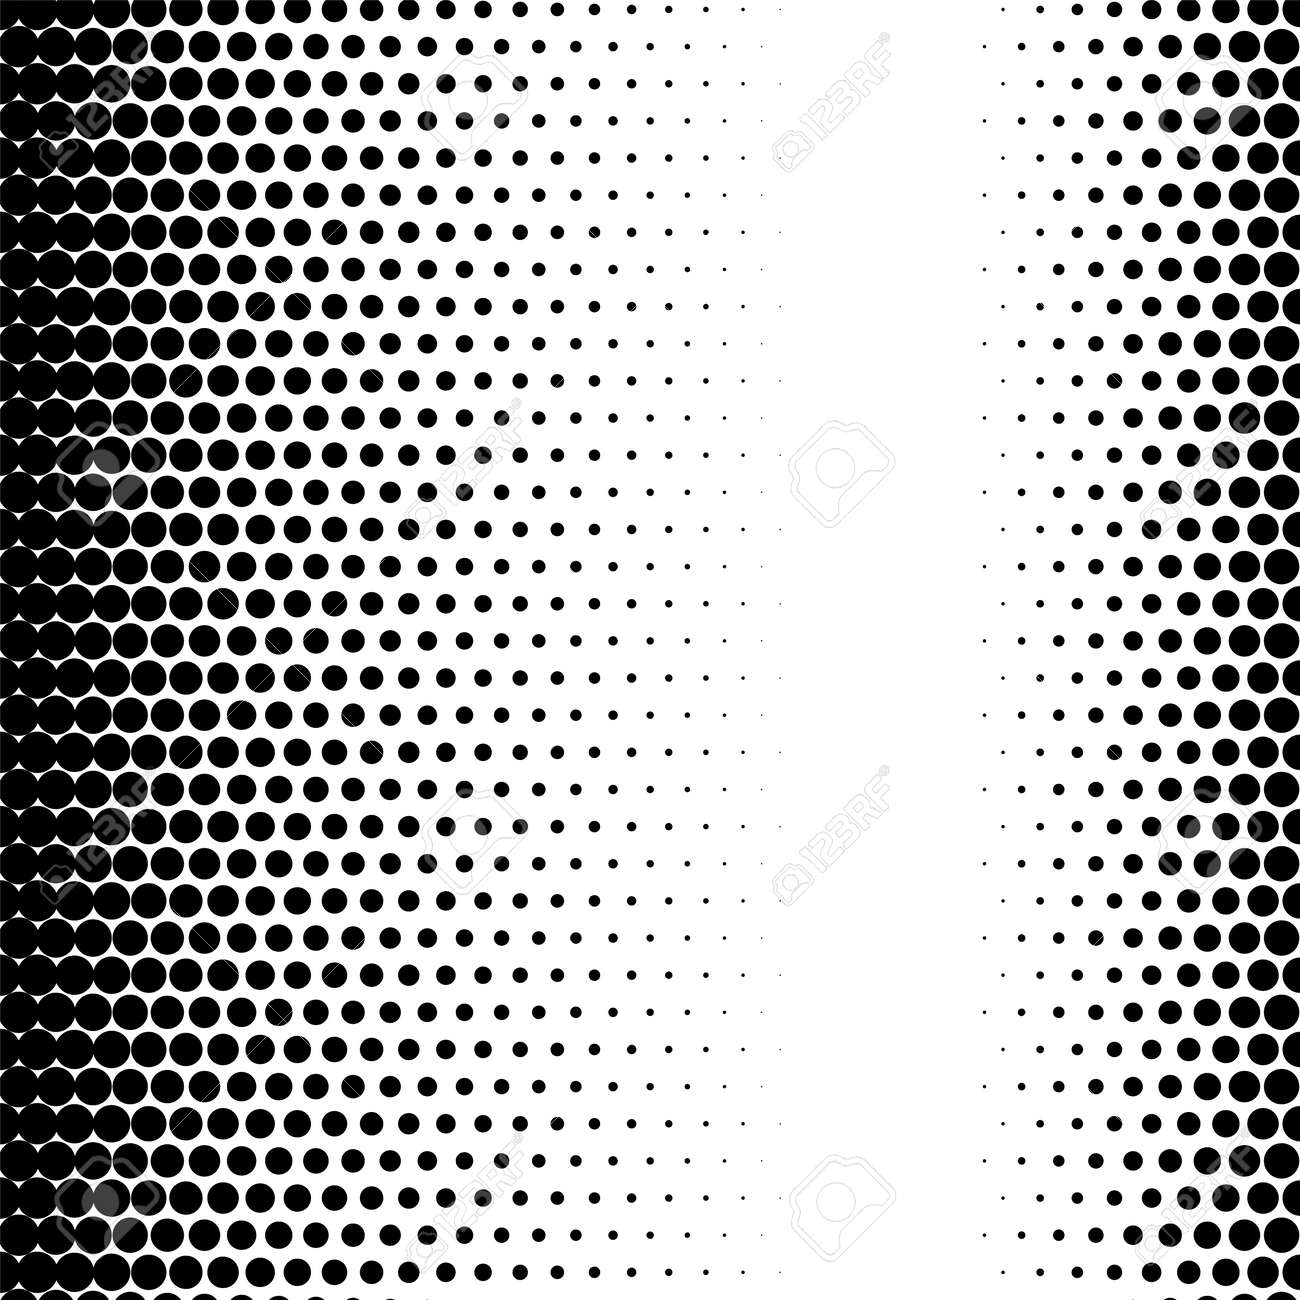 Halftone circle dots gradient texture pattern graphic raster effect - 170995195